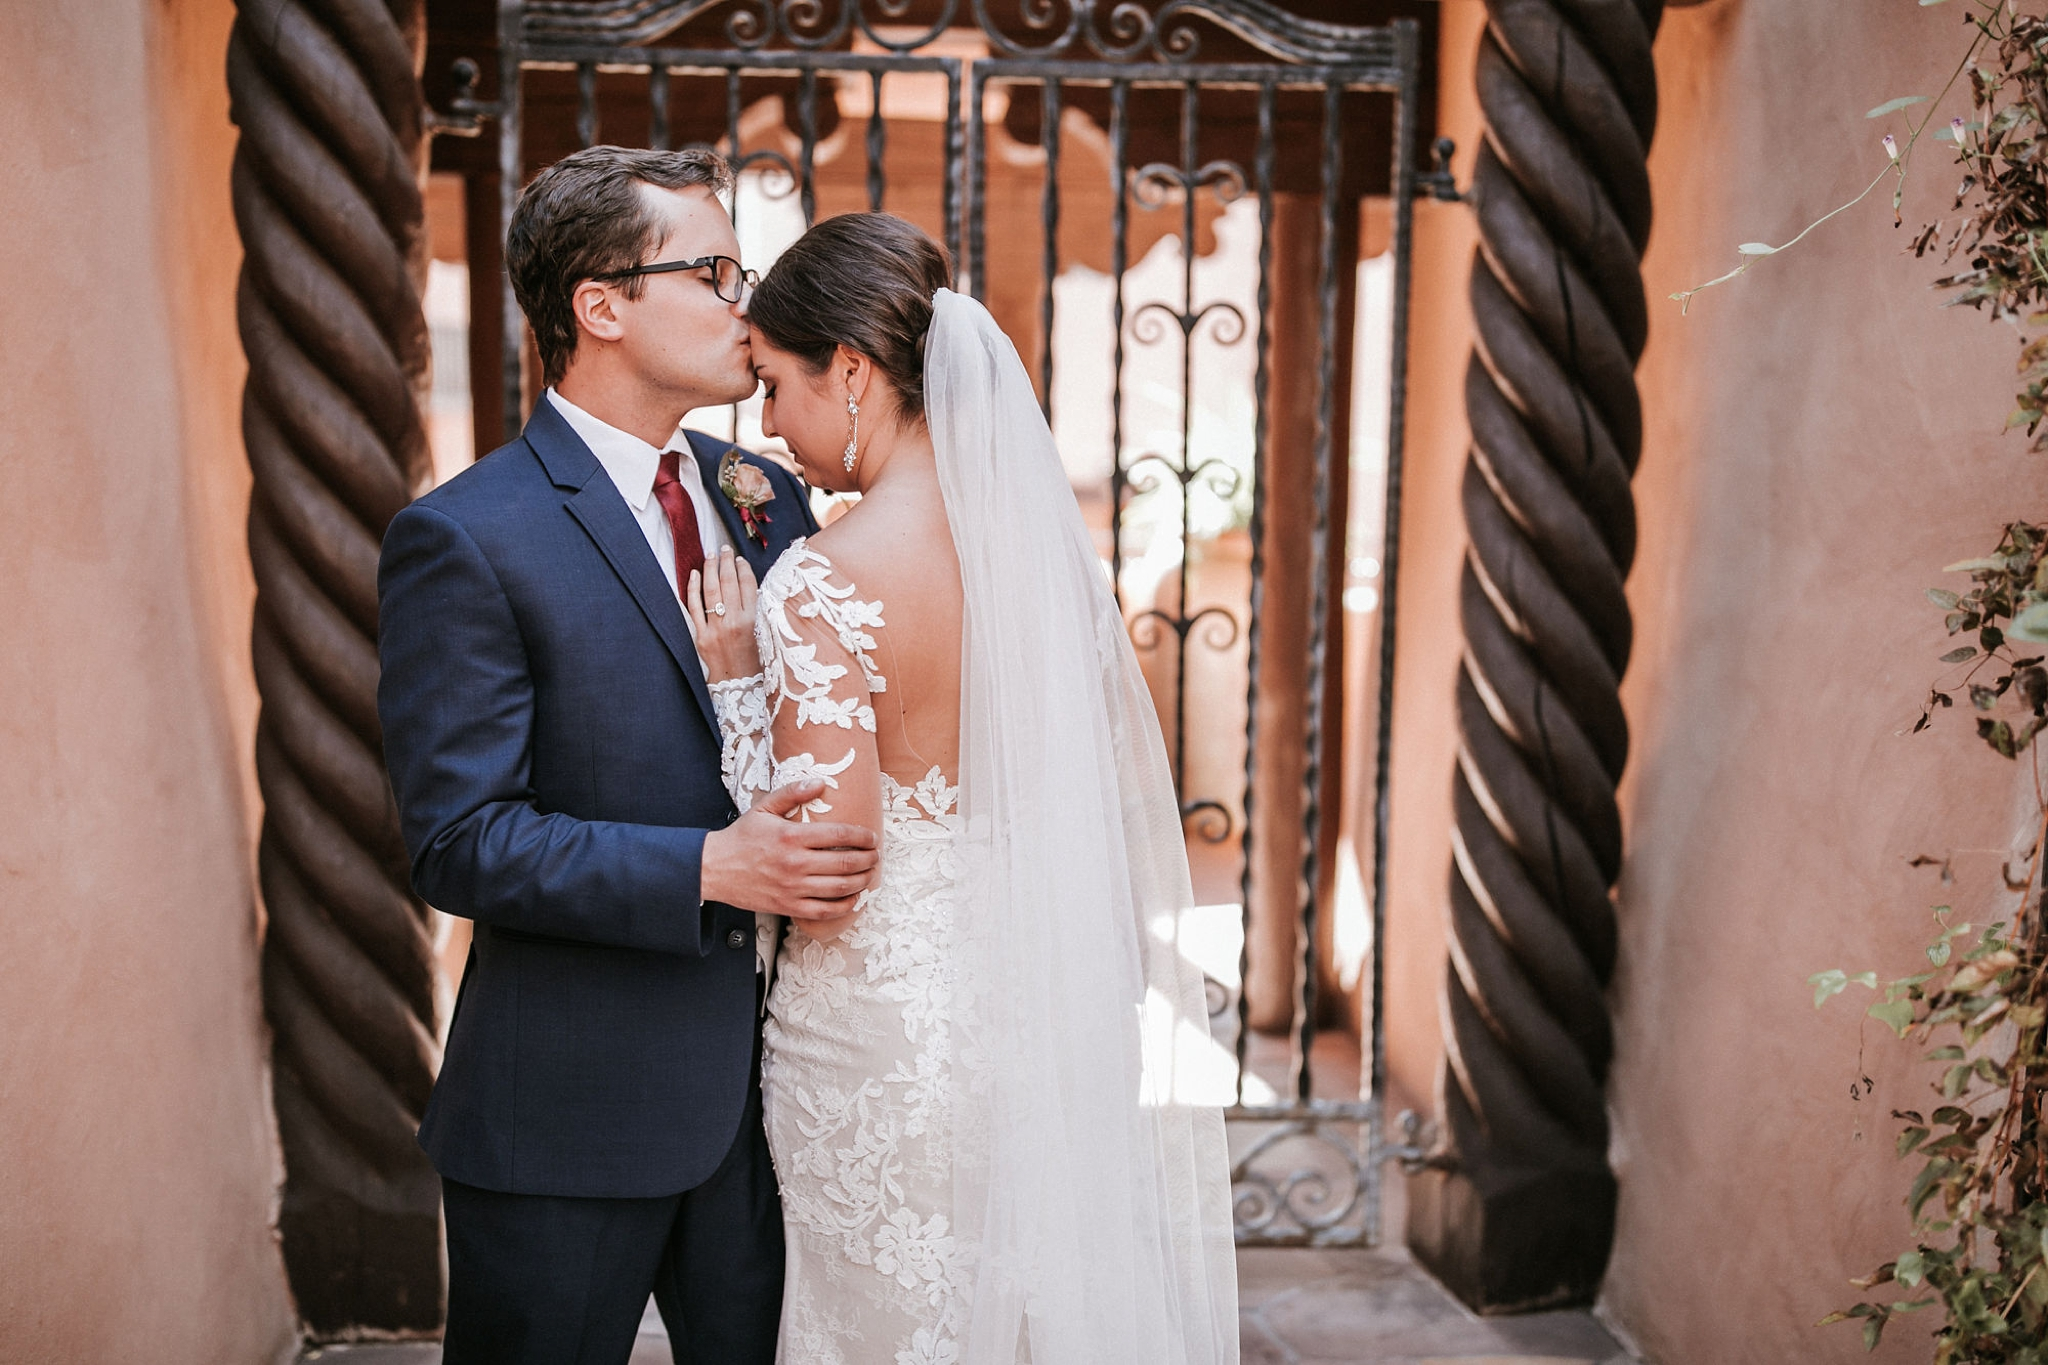 Alicia+lucia+photography+-+albuquerque+wedding+photographer+-+santa+fe+wedding+photography+-+new+mexico+wedding+photographer+-+new+mexico+wedding+-+wedding+-+groom+-+groom+style+-+wedding+style_0075.jpg